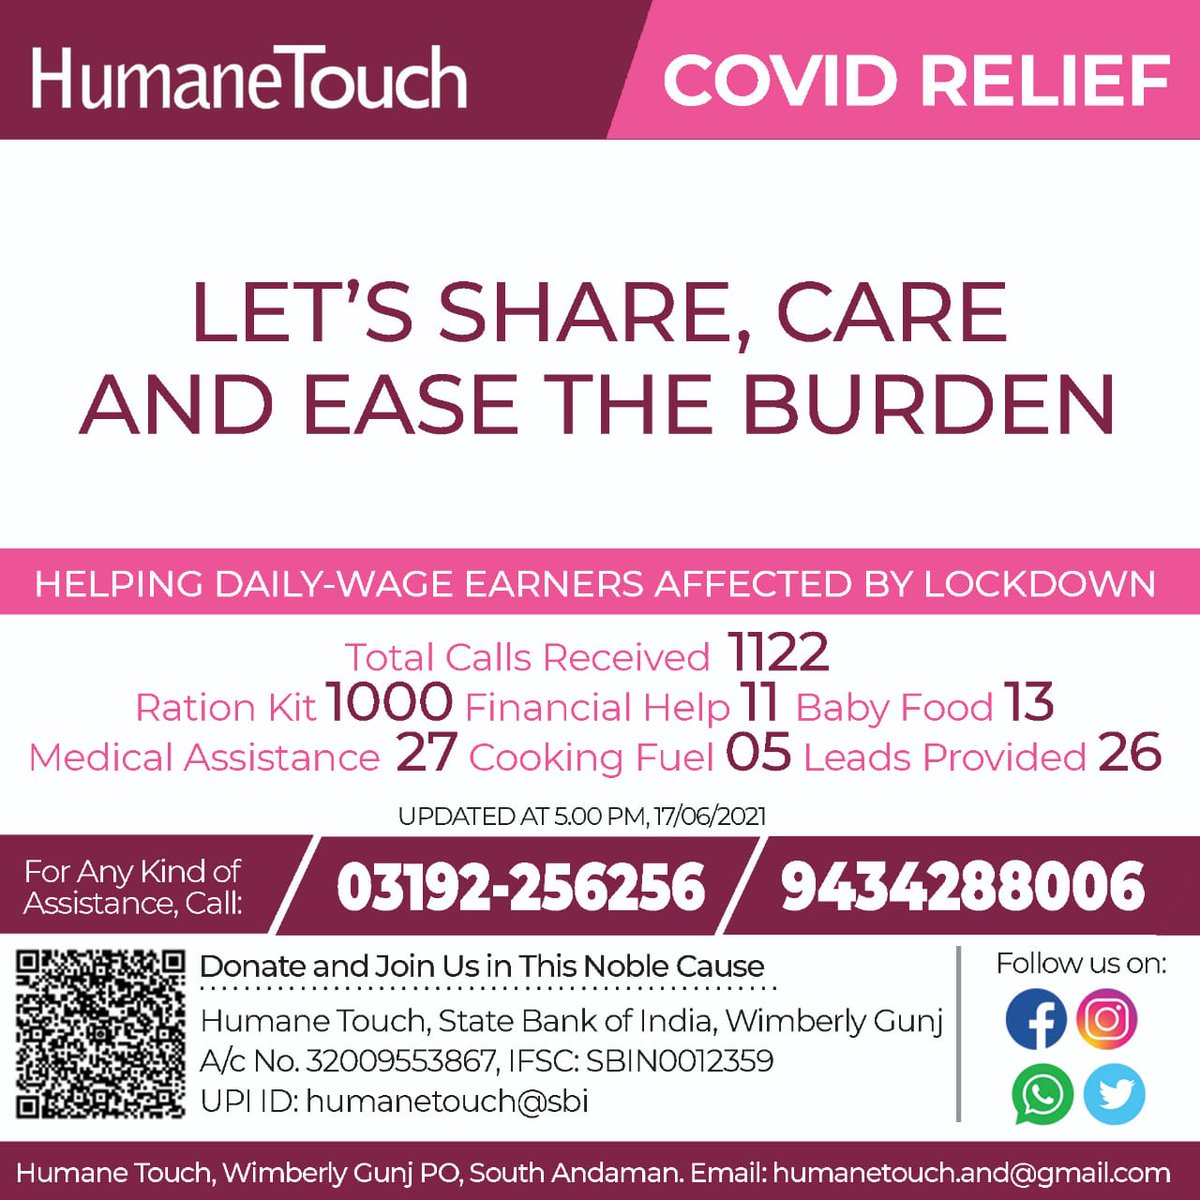 LET'S SHARE, CARE AND EASE THE BURDEN  #sharingiscaring   Help just a call away  Donate and Join us in this Noble Cause  #RiseTogetherForAndaman #StayHomeStaySafe #HumaneTouch https://t.co/QeyT75Ydln